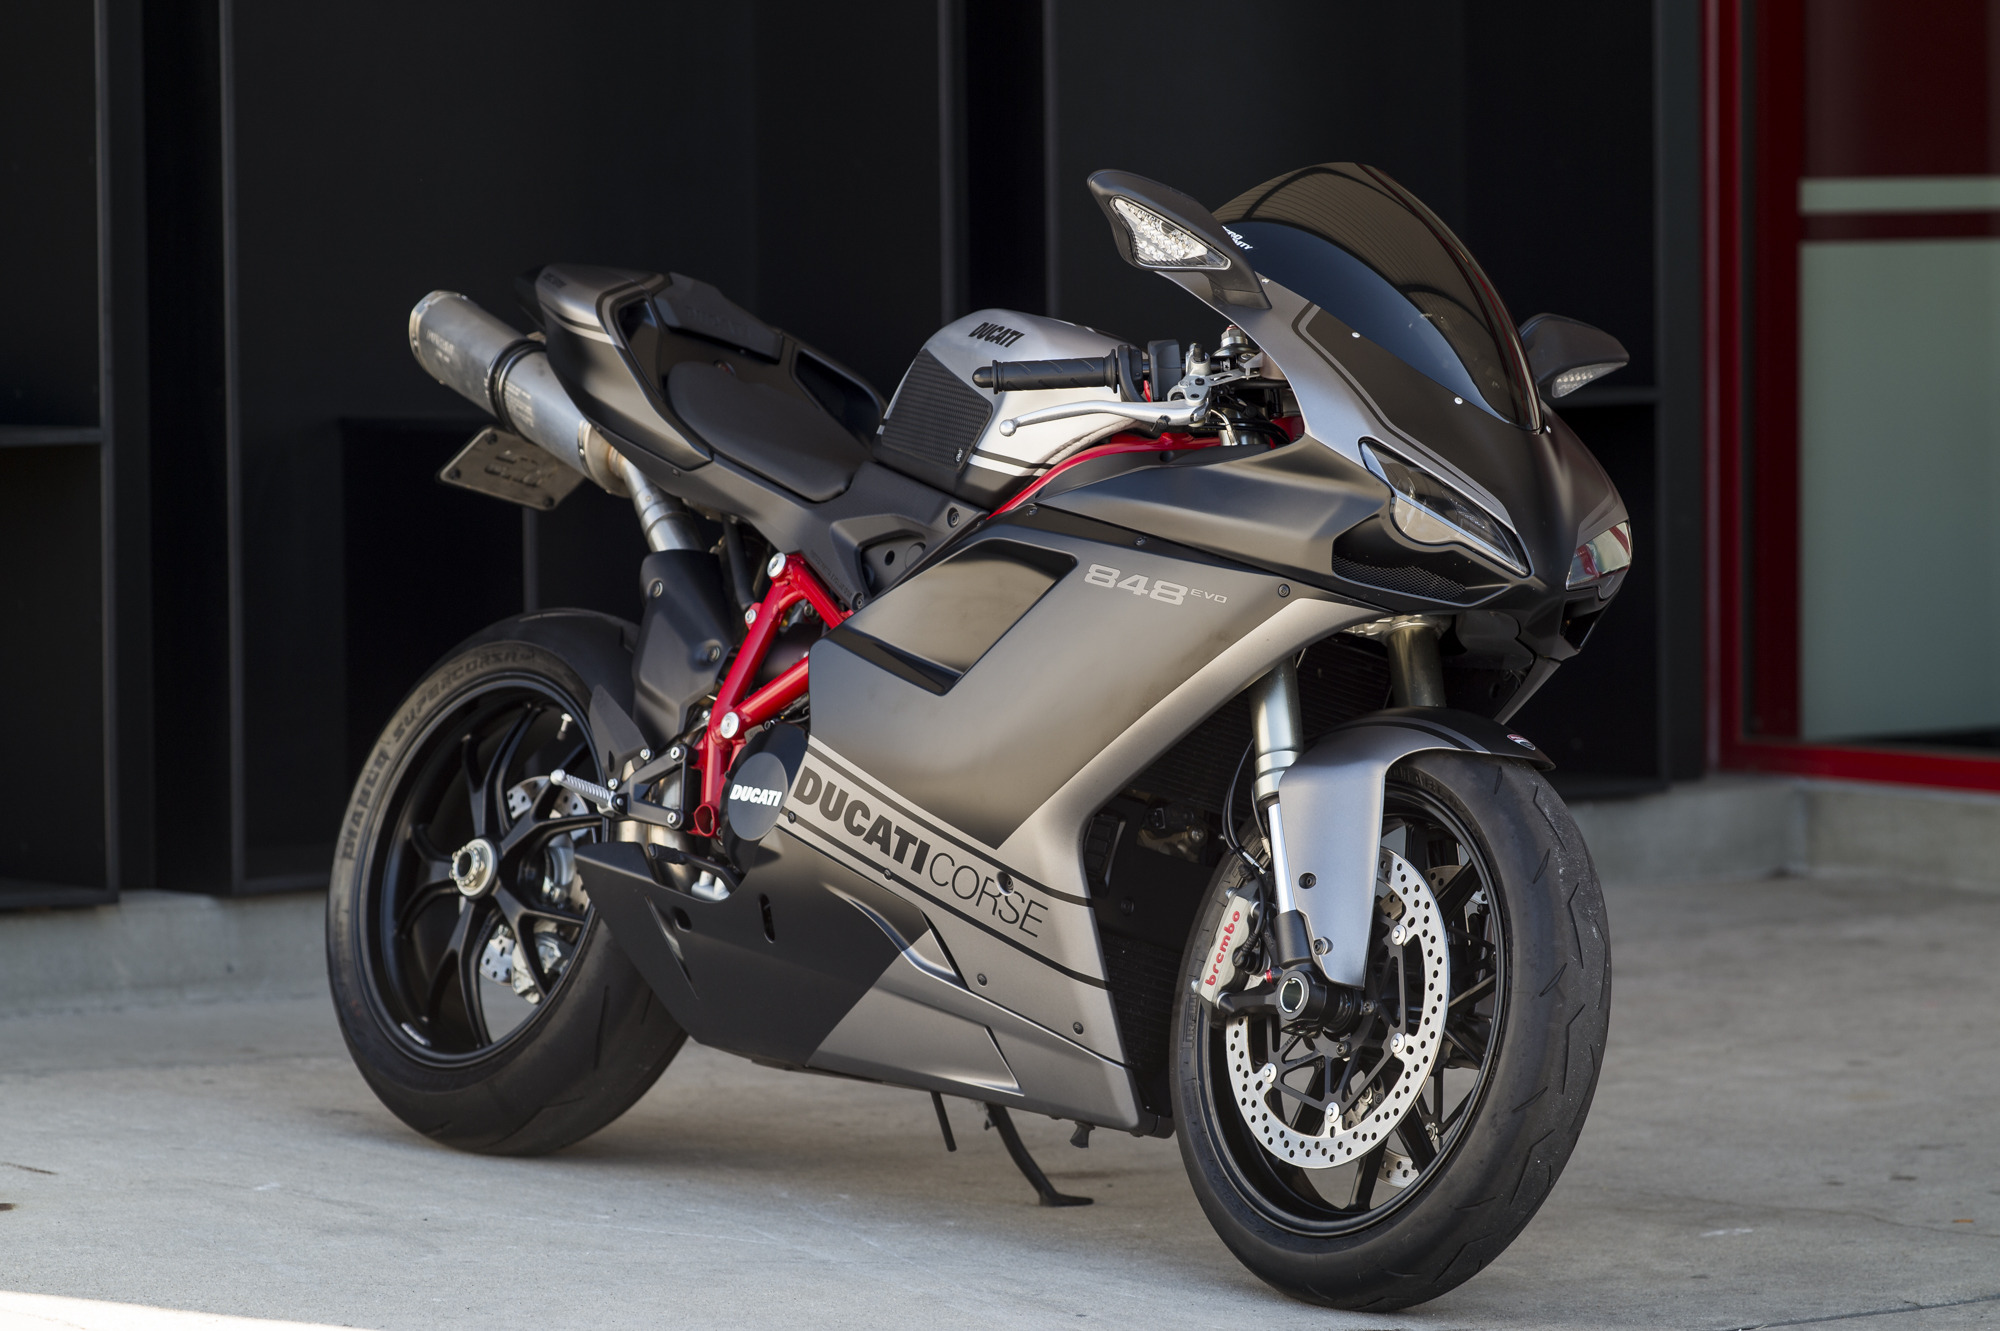 ducati 848 evo corse se pics specs and list of seriess by year. Black Bedroom Furniture Sets. Home Design Ideas